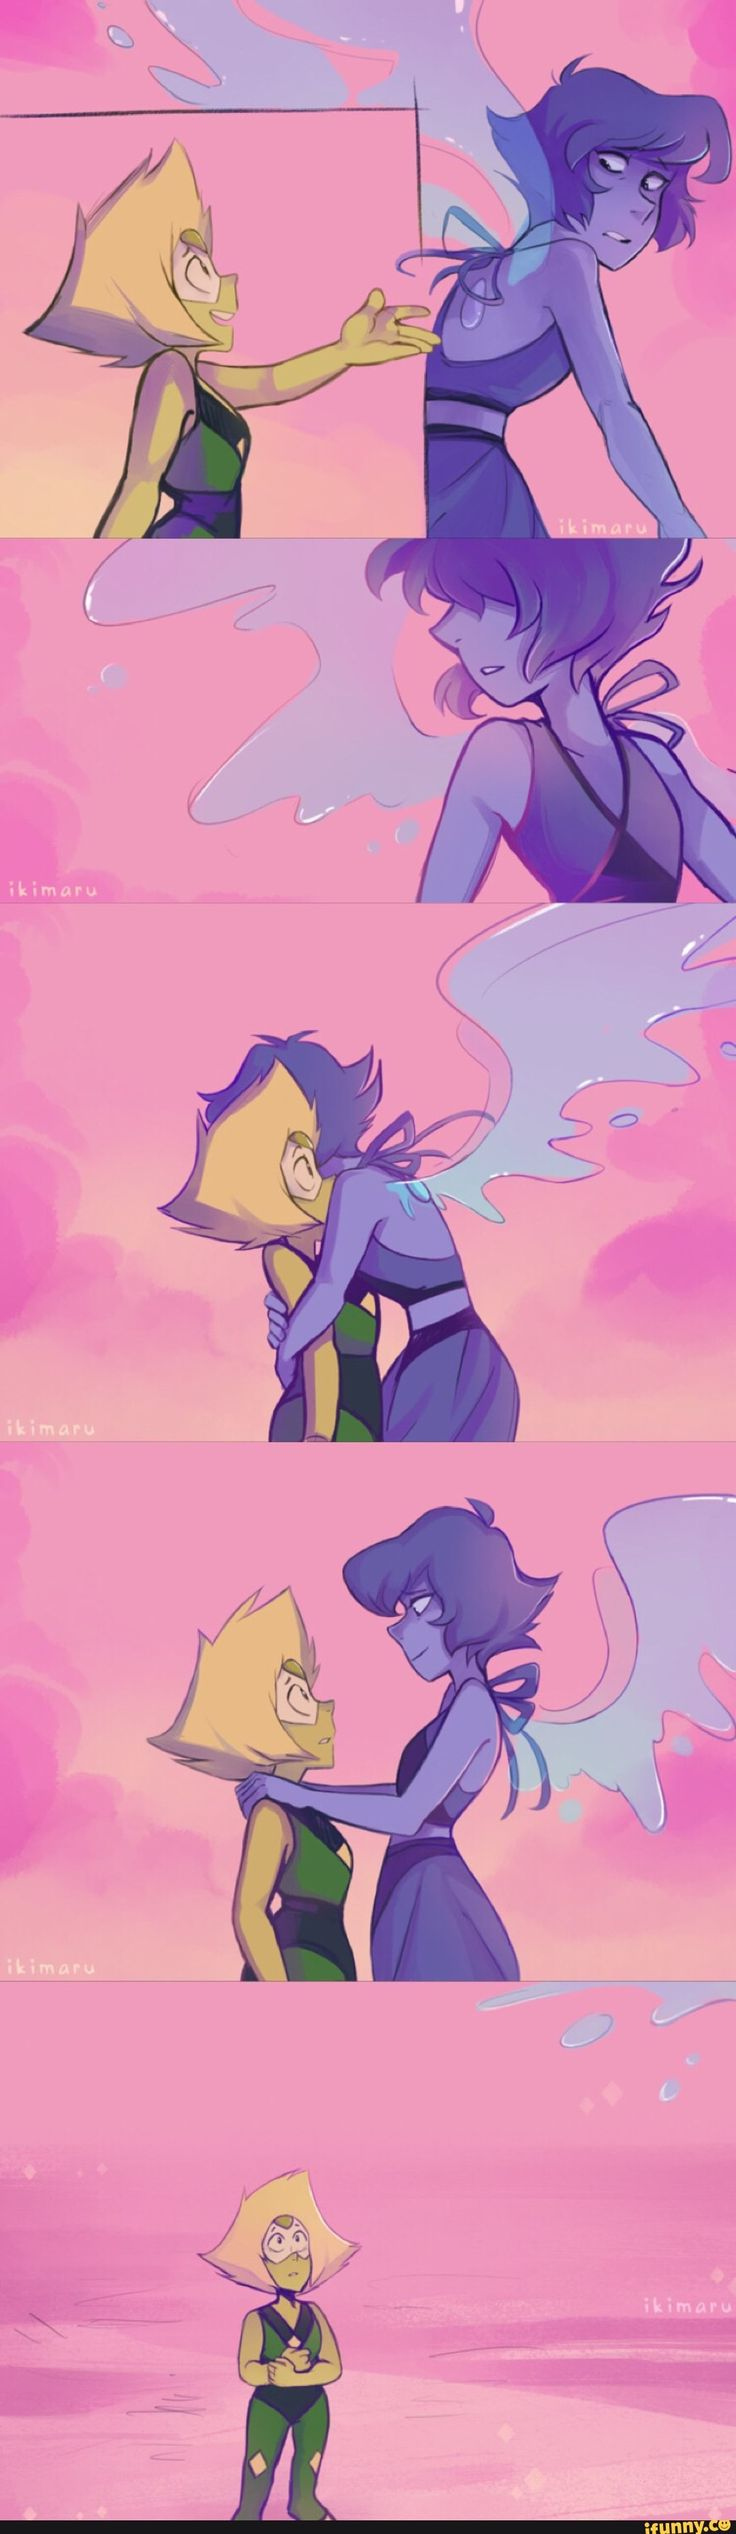 Ok so that might be lapidot but come on even if you don't ship it its cute